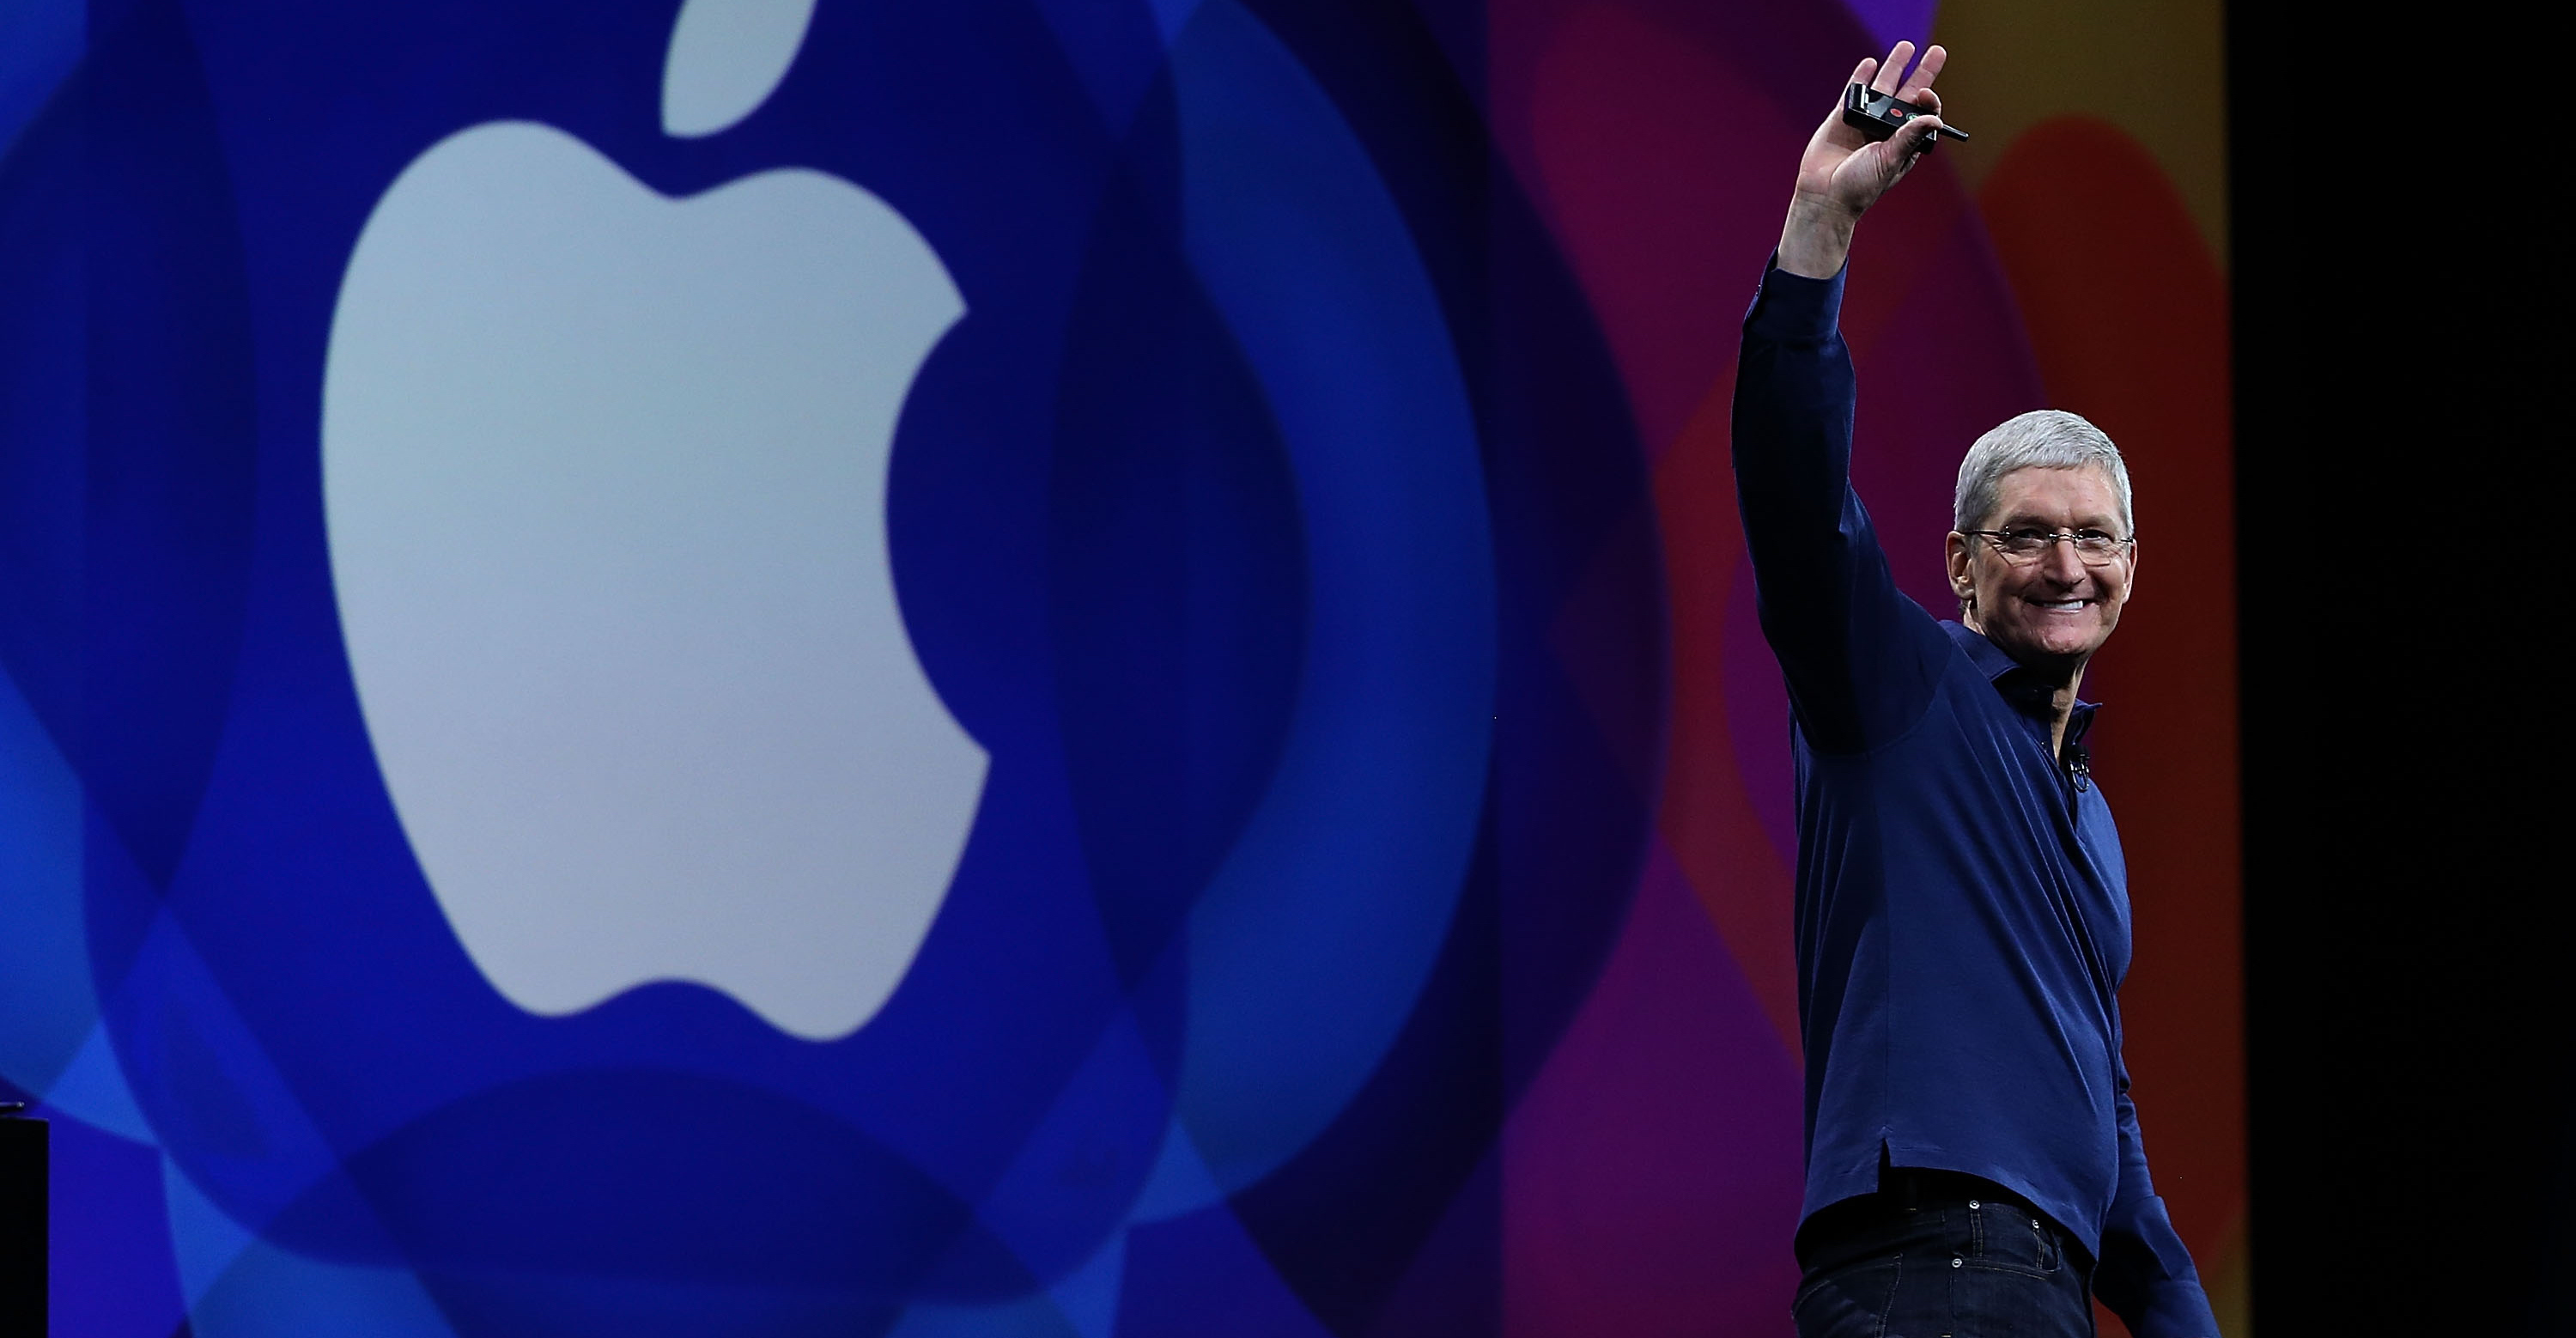 Will There Be One More Thing at Apple's iPhone Event?